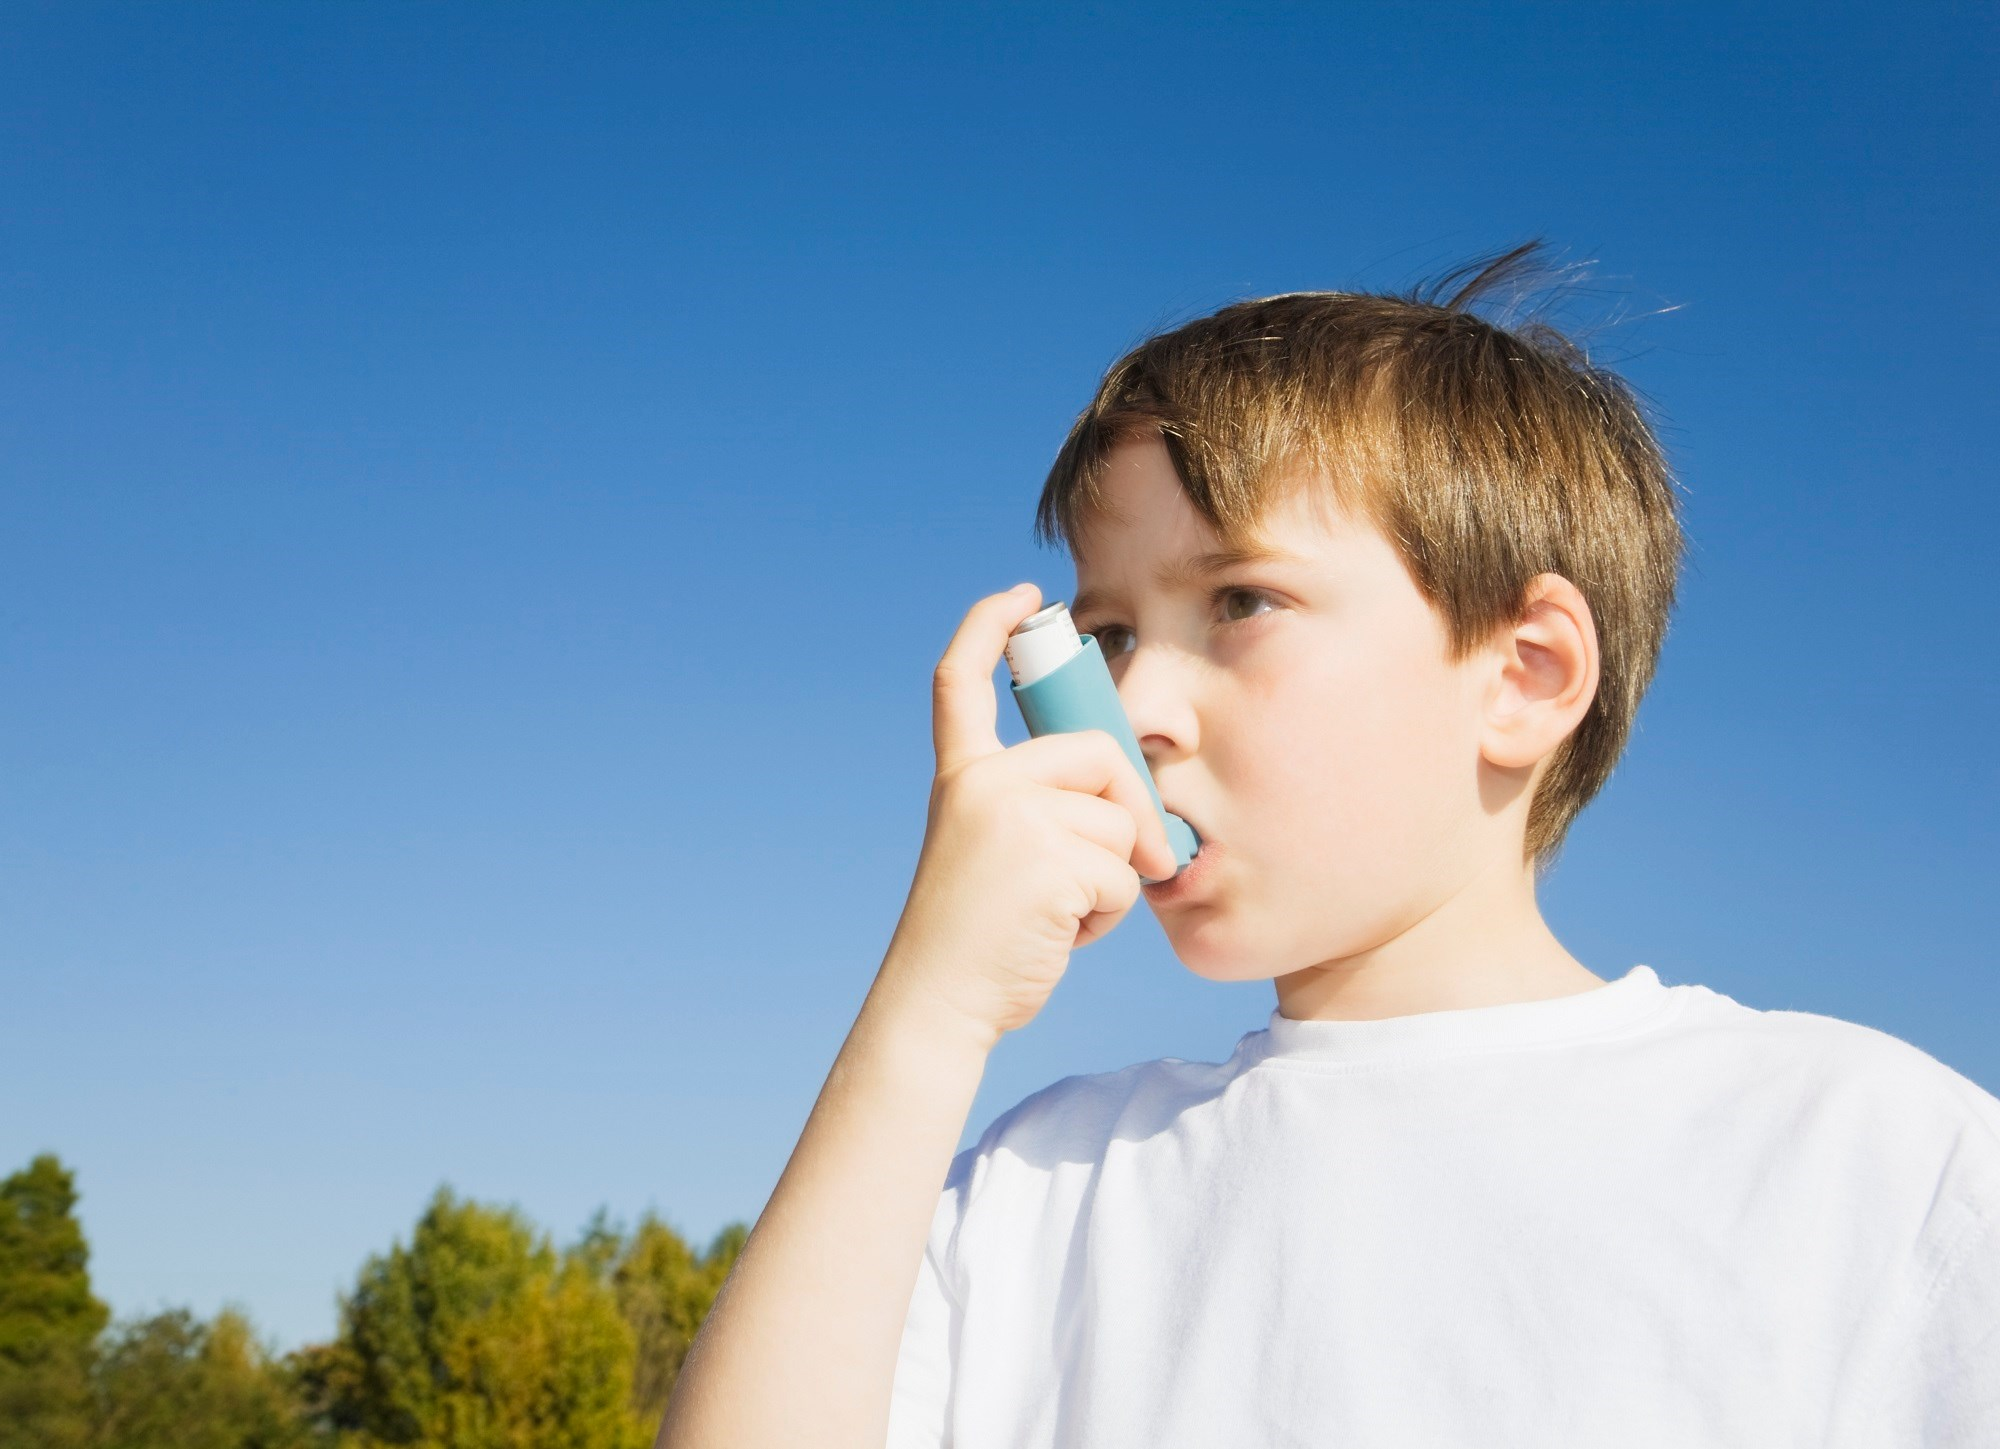 Asthma Risk Increased With Early-Onset Persistent Bronchial Hyperresponsiveness